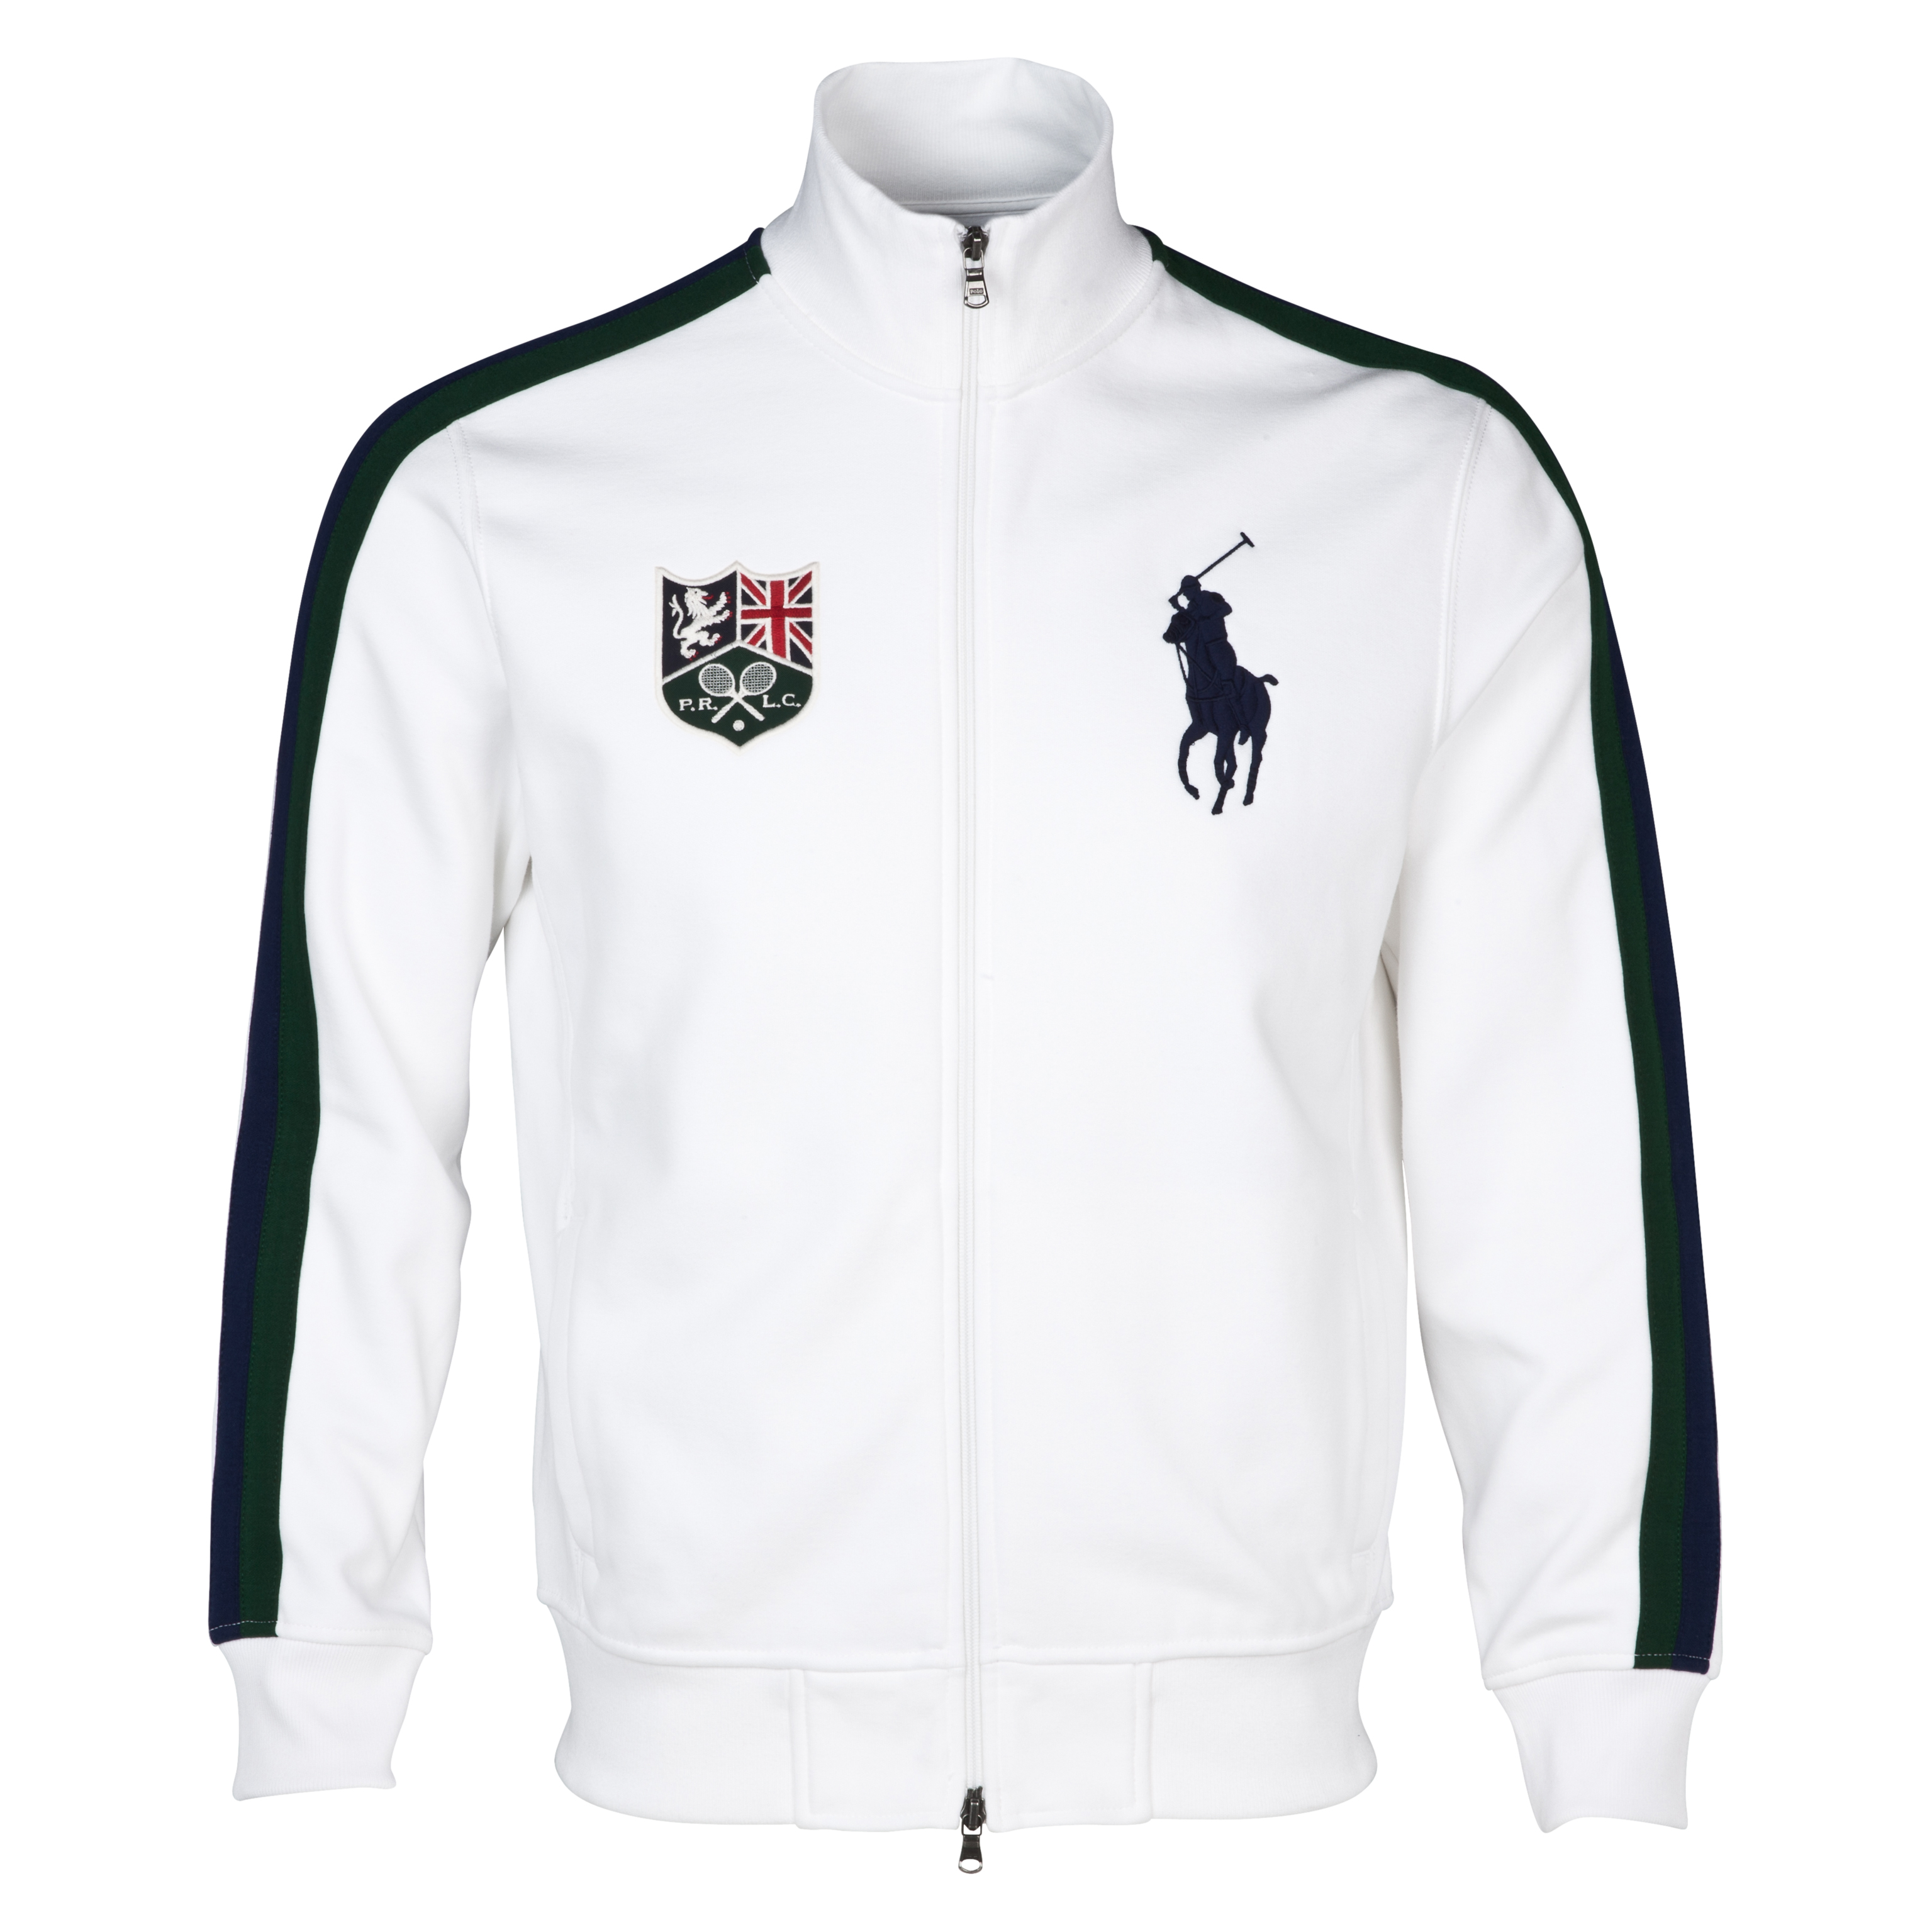 Wimbledon Polo Ralph Lauren Wimbledon Trainer Fleece Jacket White